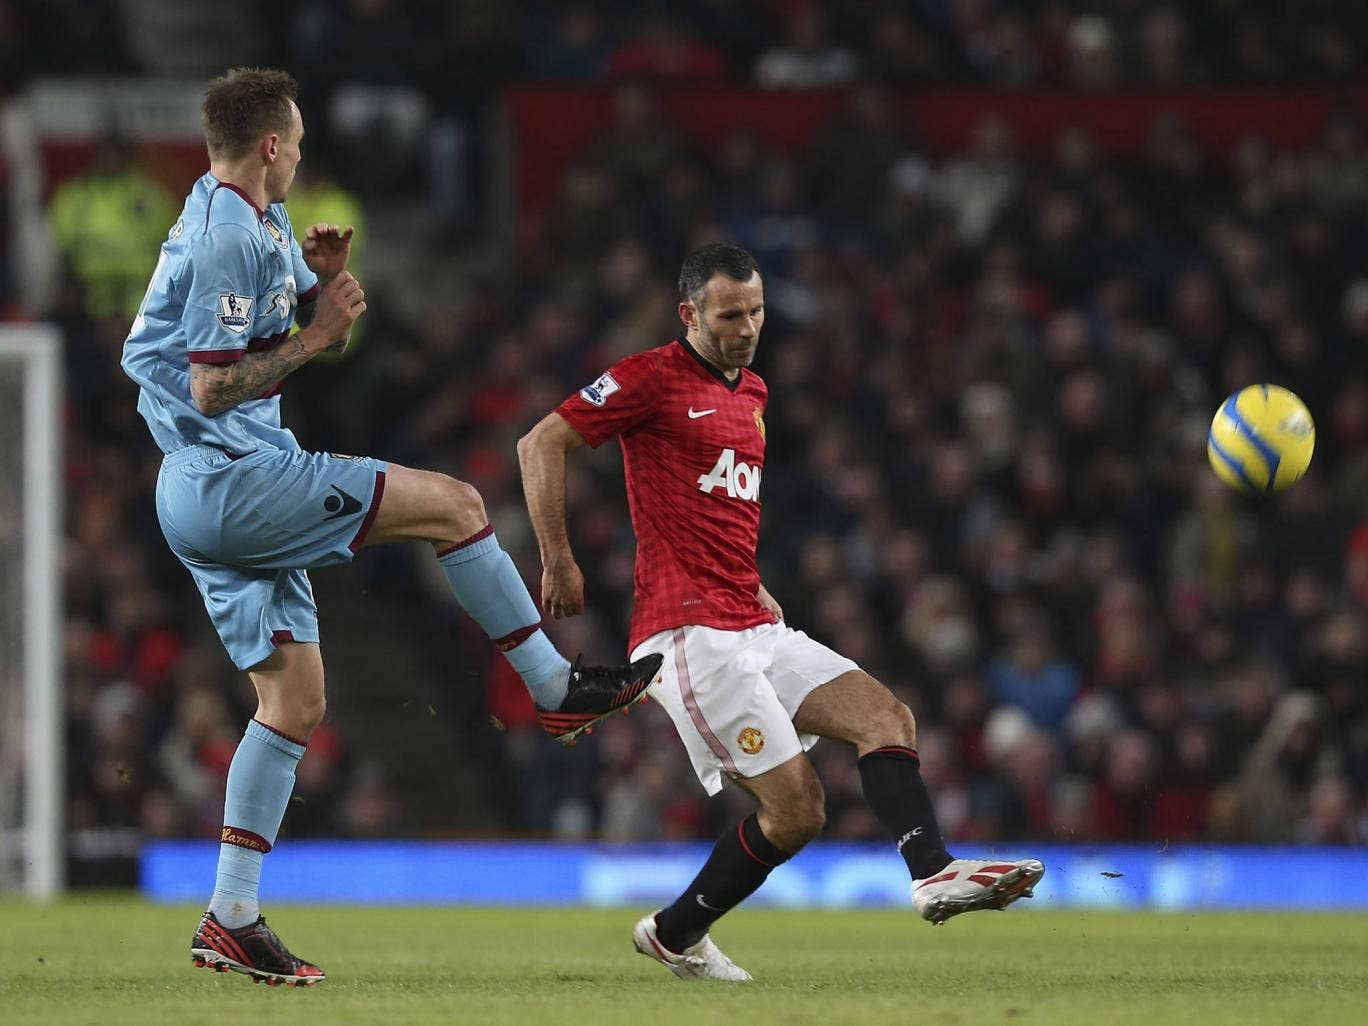 Ryan Giggs in action against West Ham